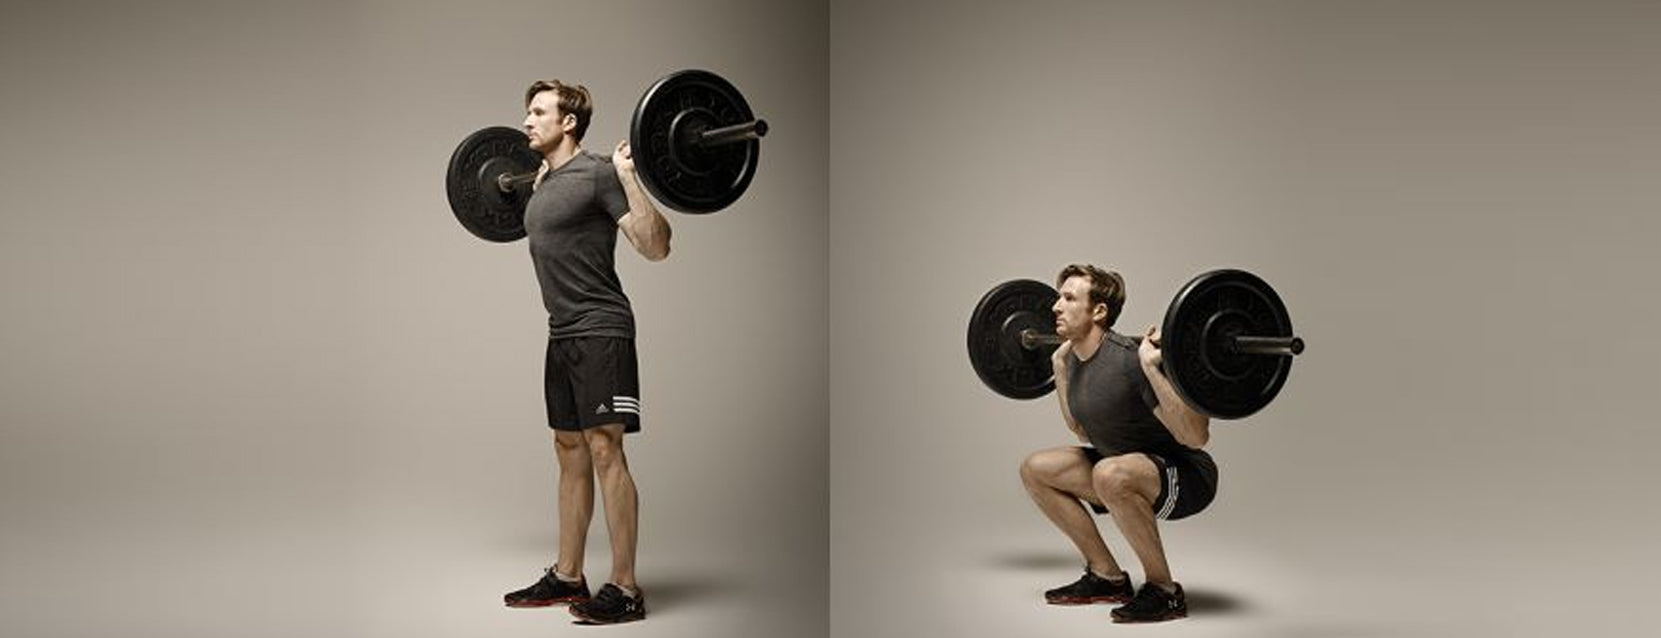 squats with bar